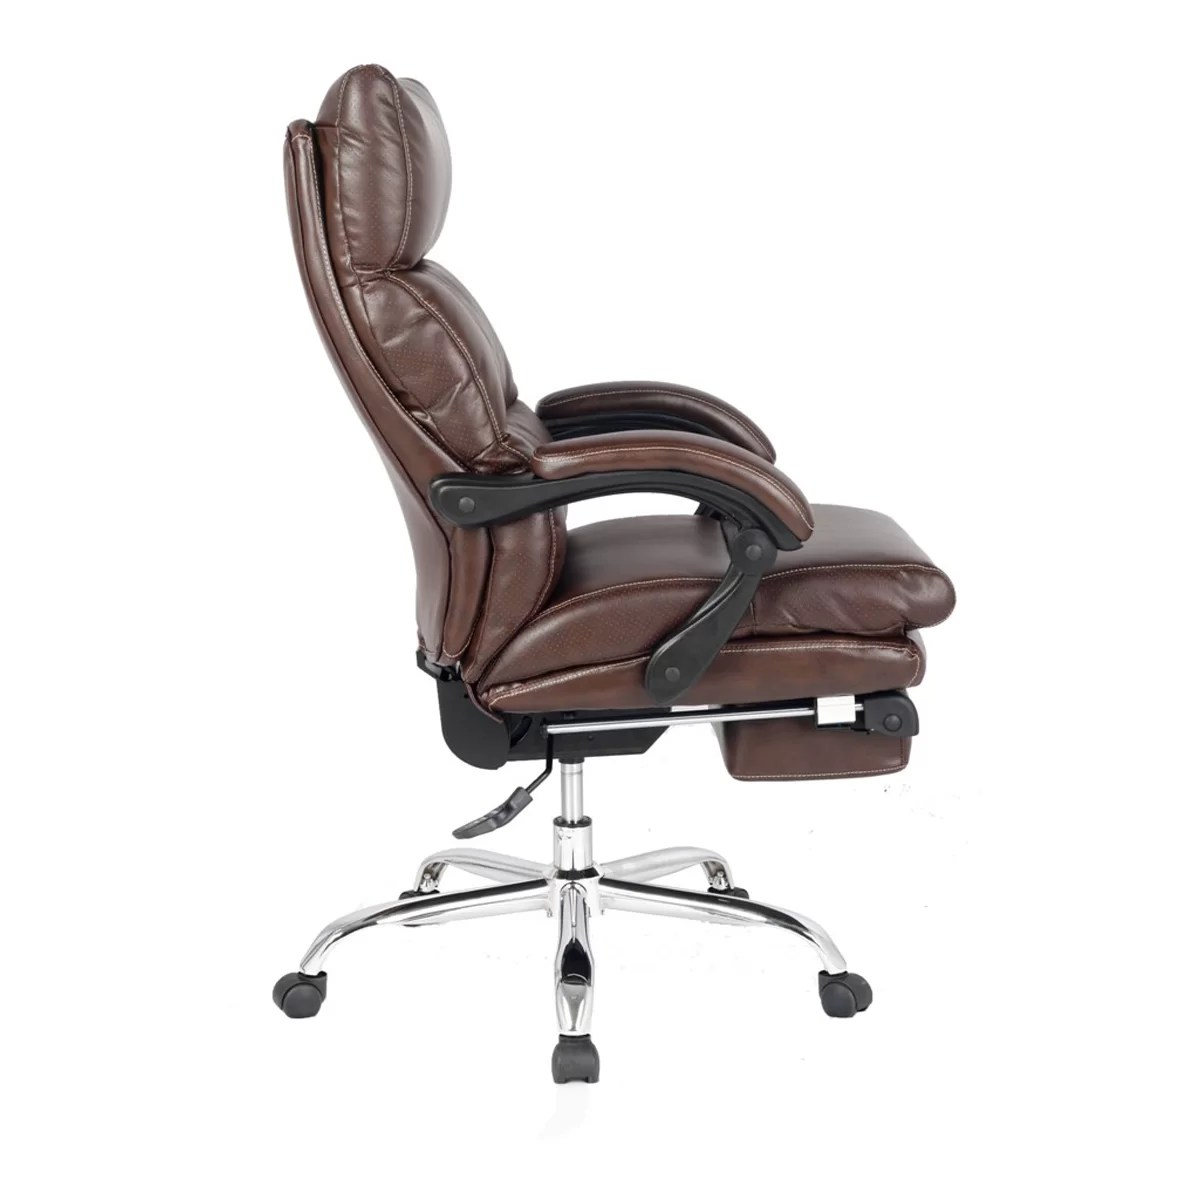 Viva Office Chair Viva Office High Back Leather Executive Chair With Double